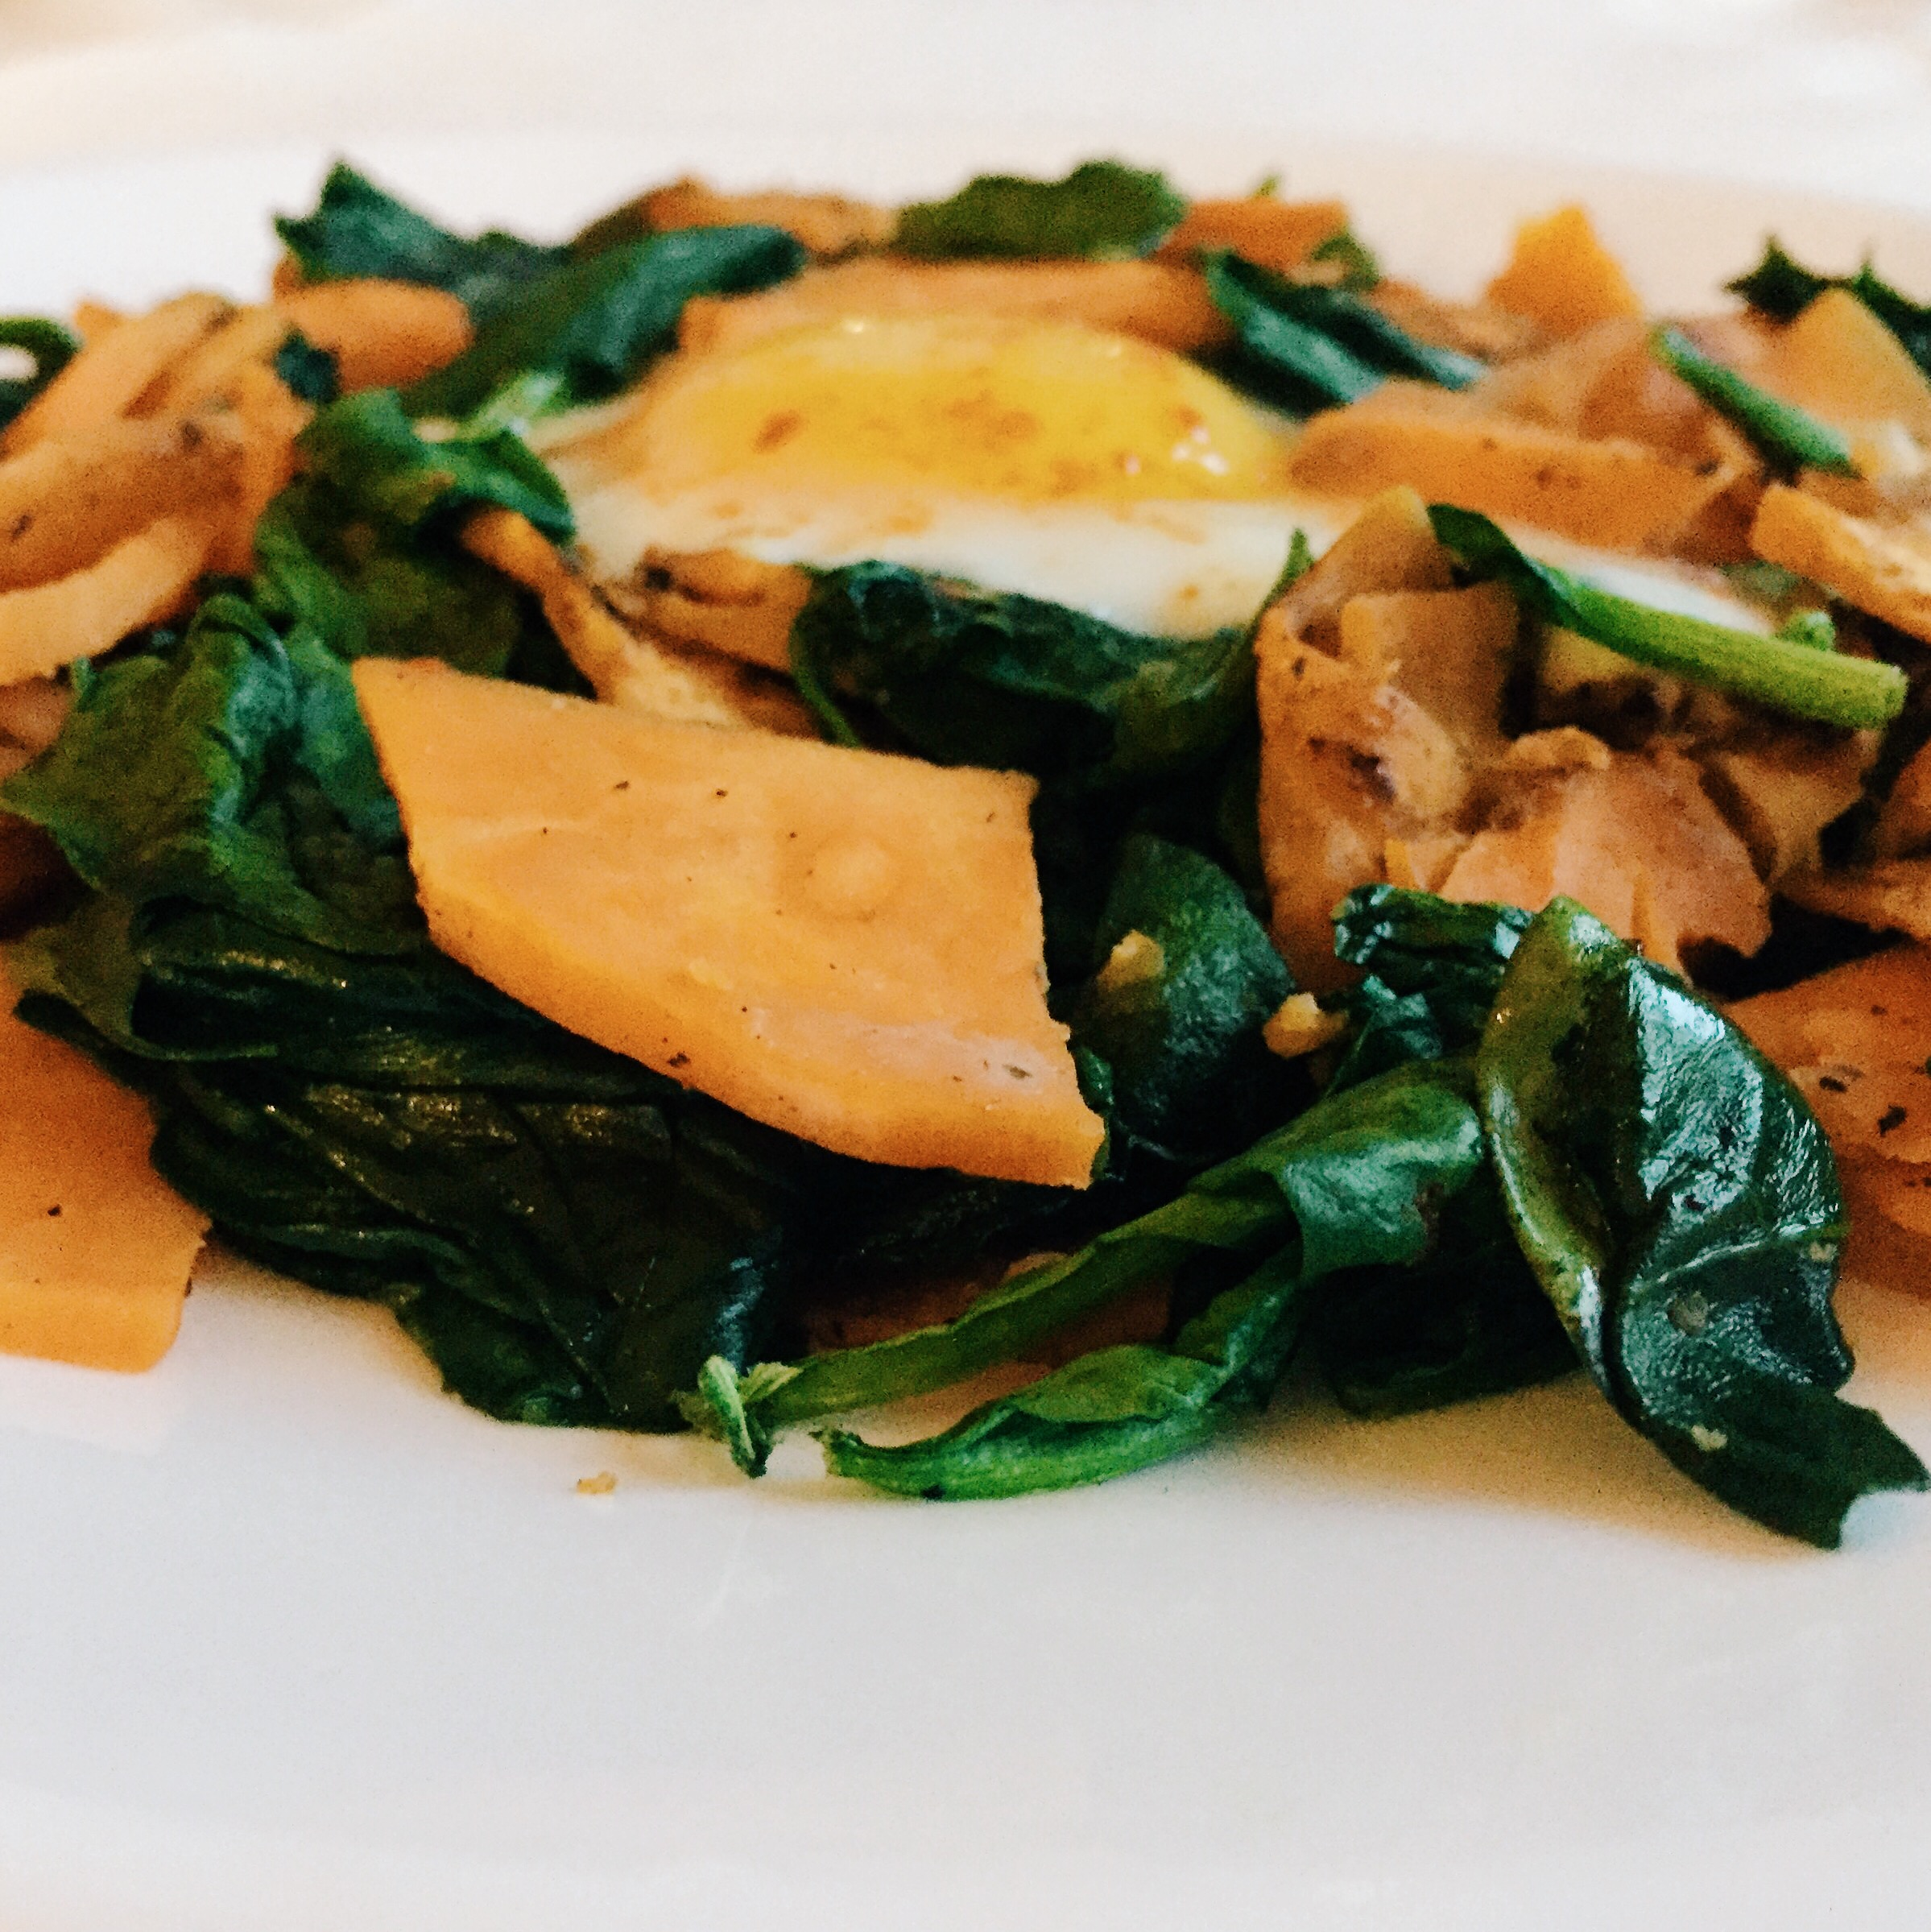 My easy and quick breakfast - spinach, sweet potatoes, and eggs. More recipes  here ,  here , and  here .